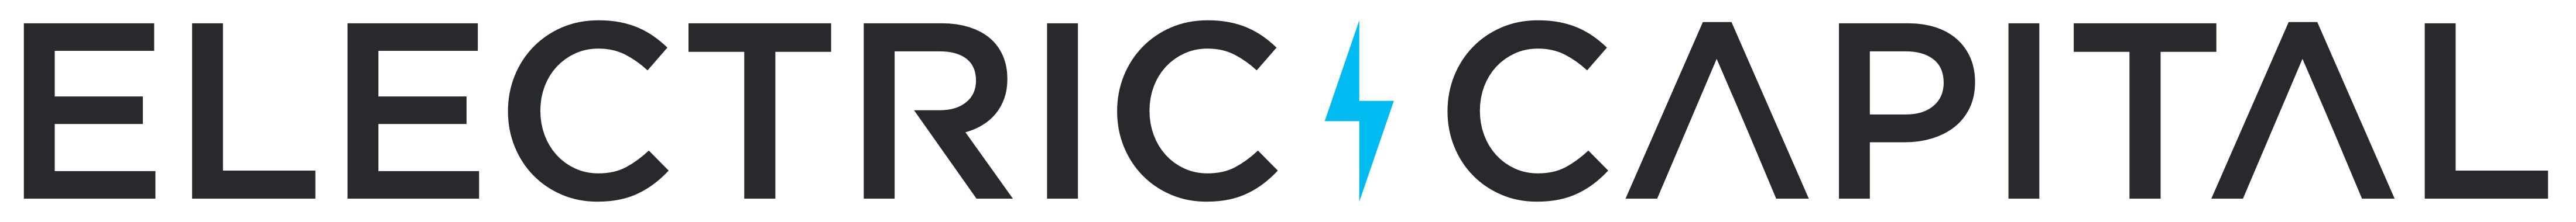 Electric capital logo